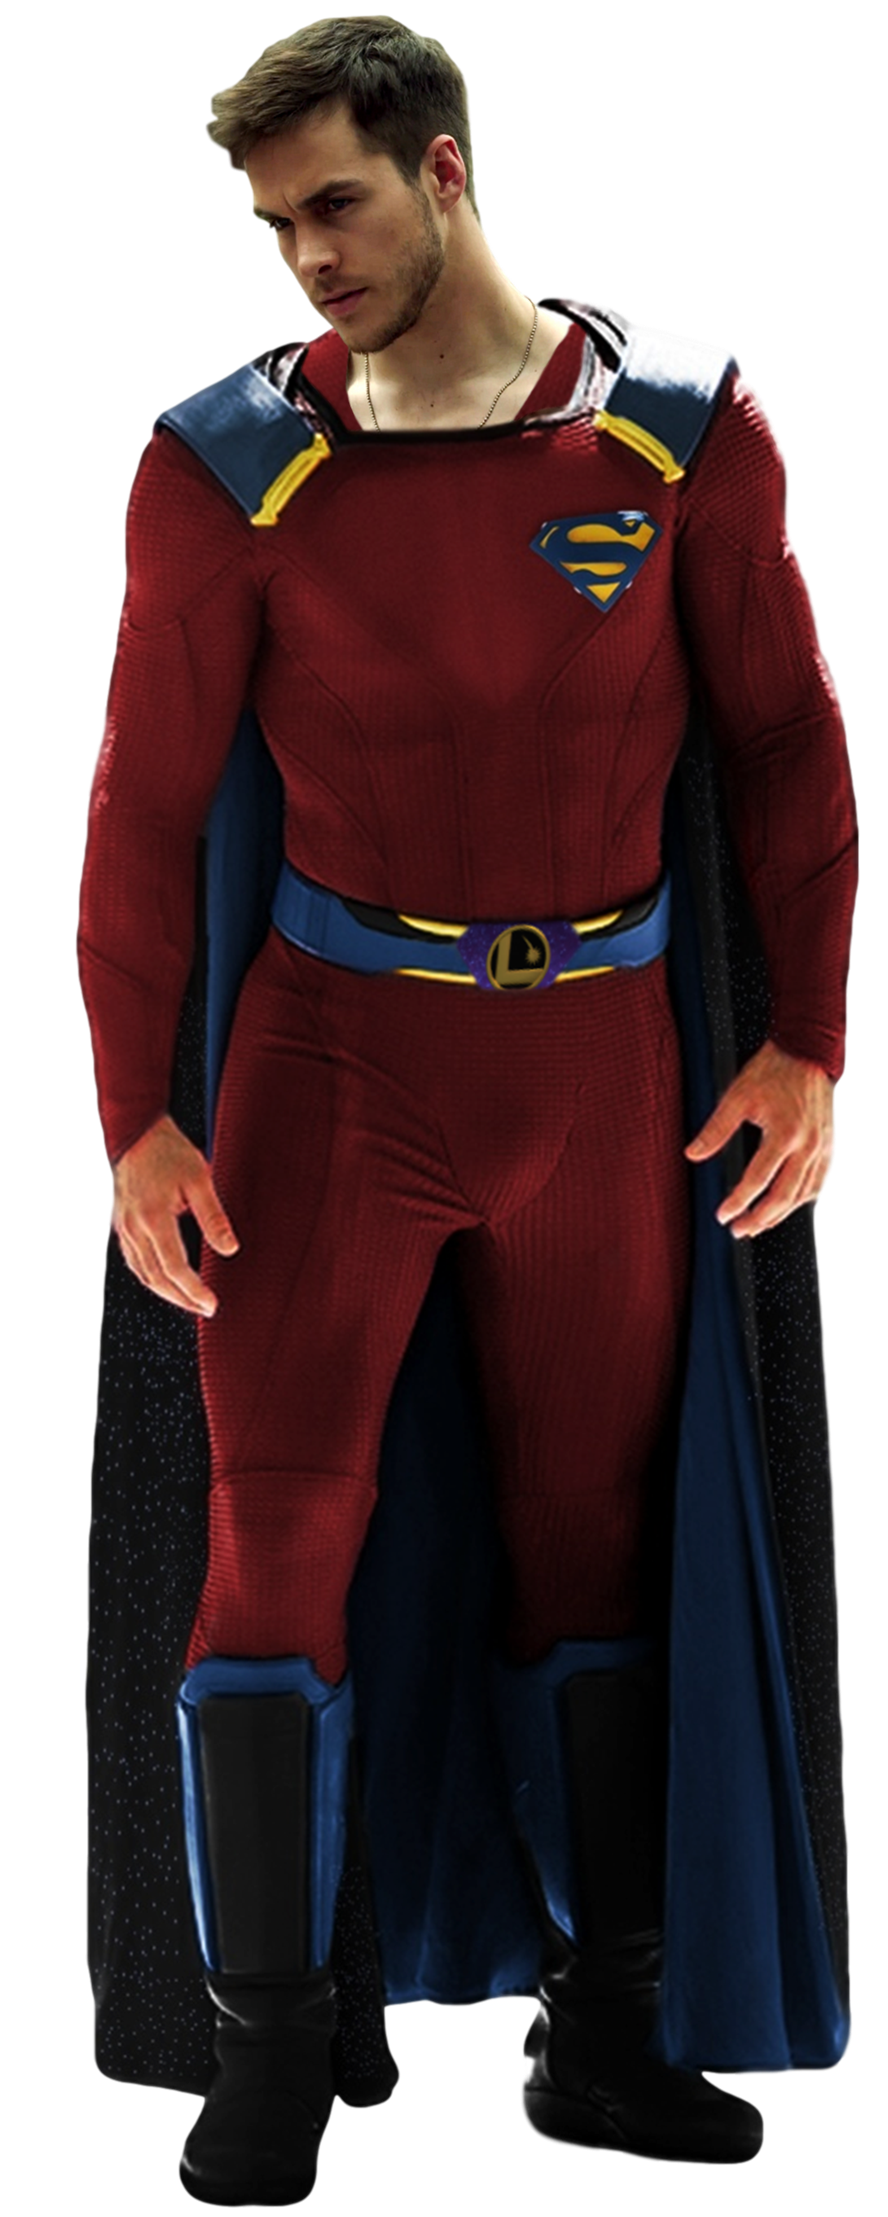 Supergirl helen slater png. Chris wood as mon